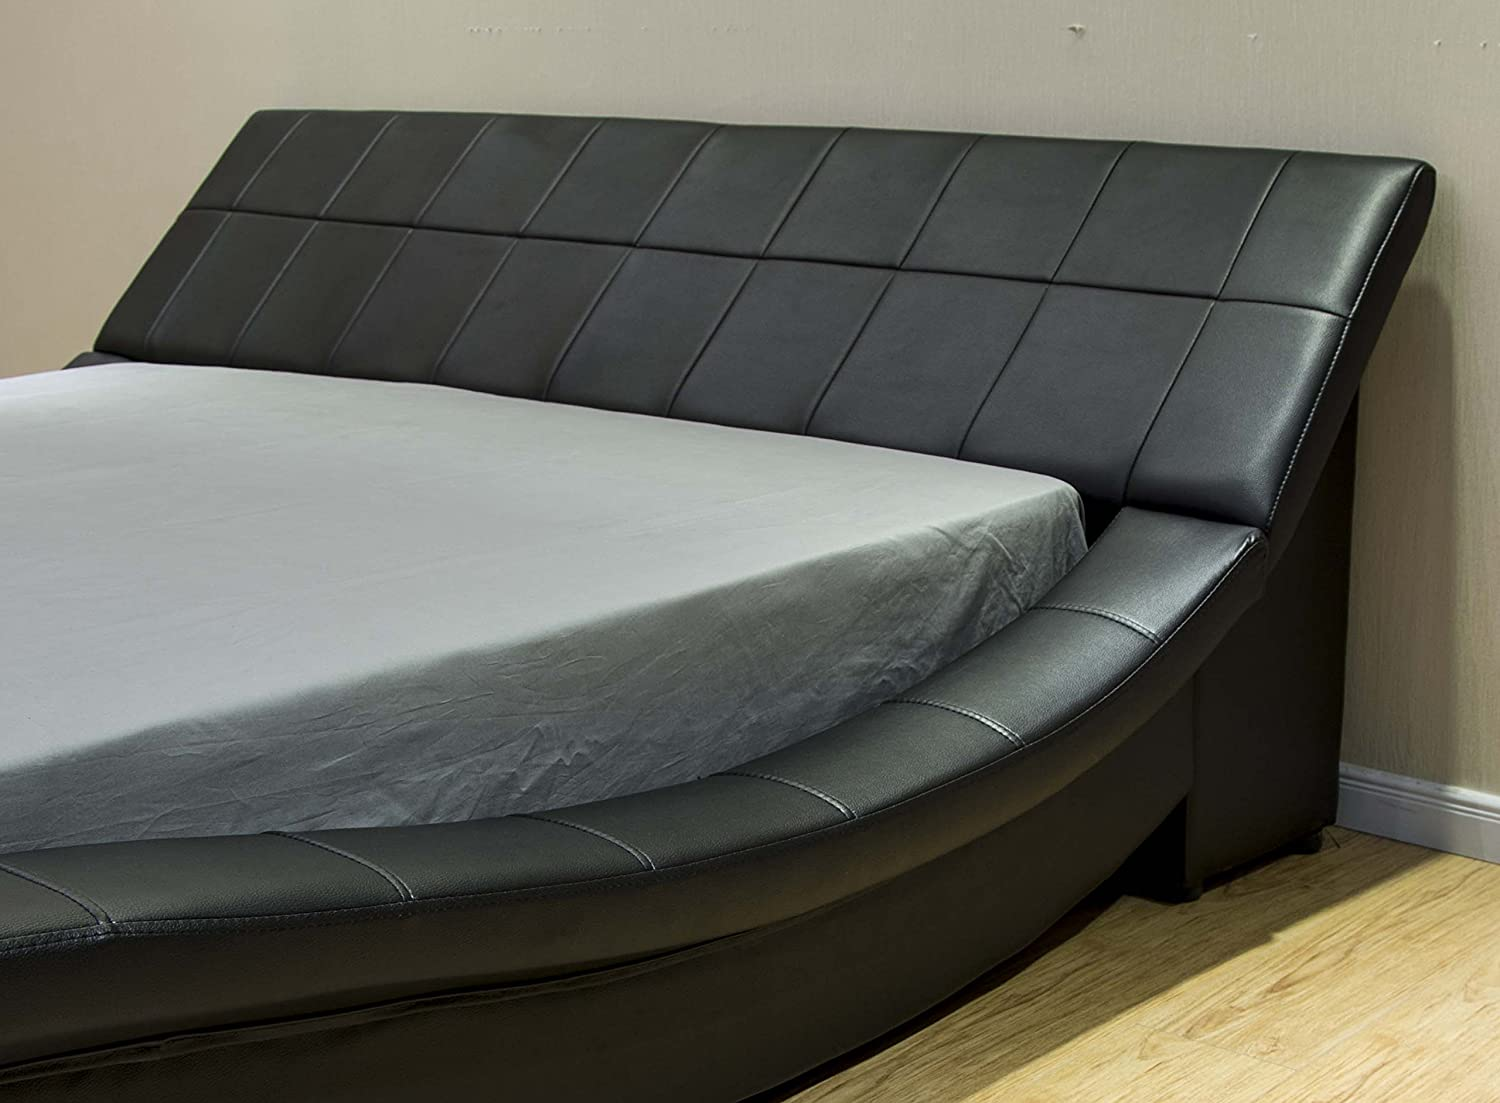 Top 8 Best Curved Platform Beds Reviews in 2020 35